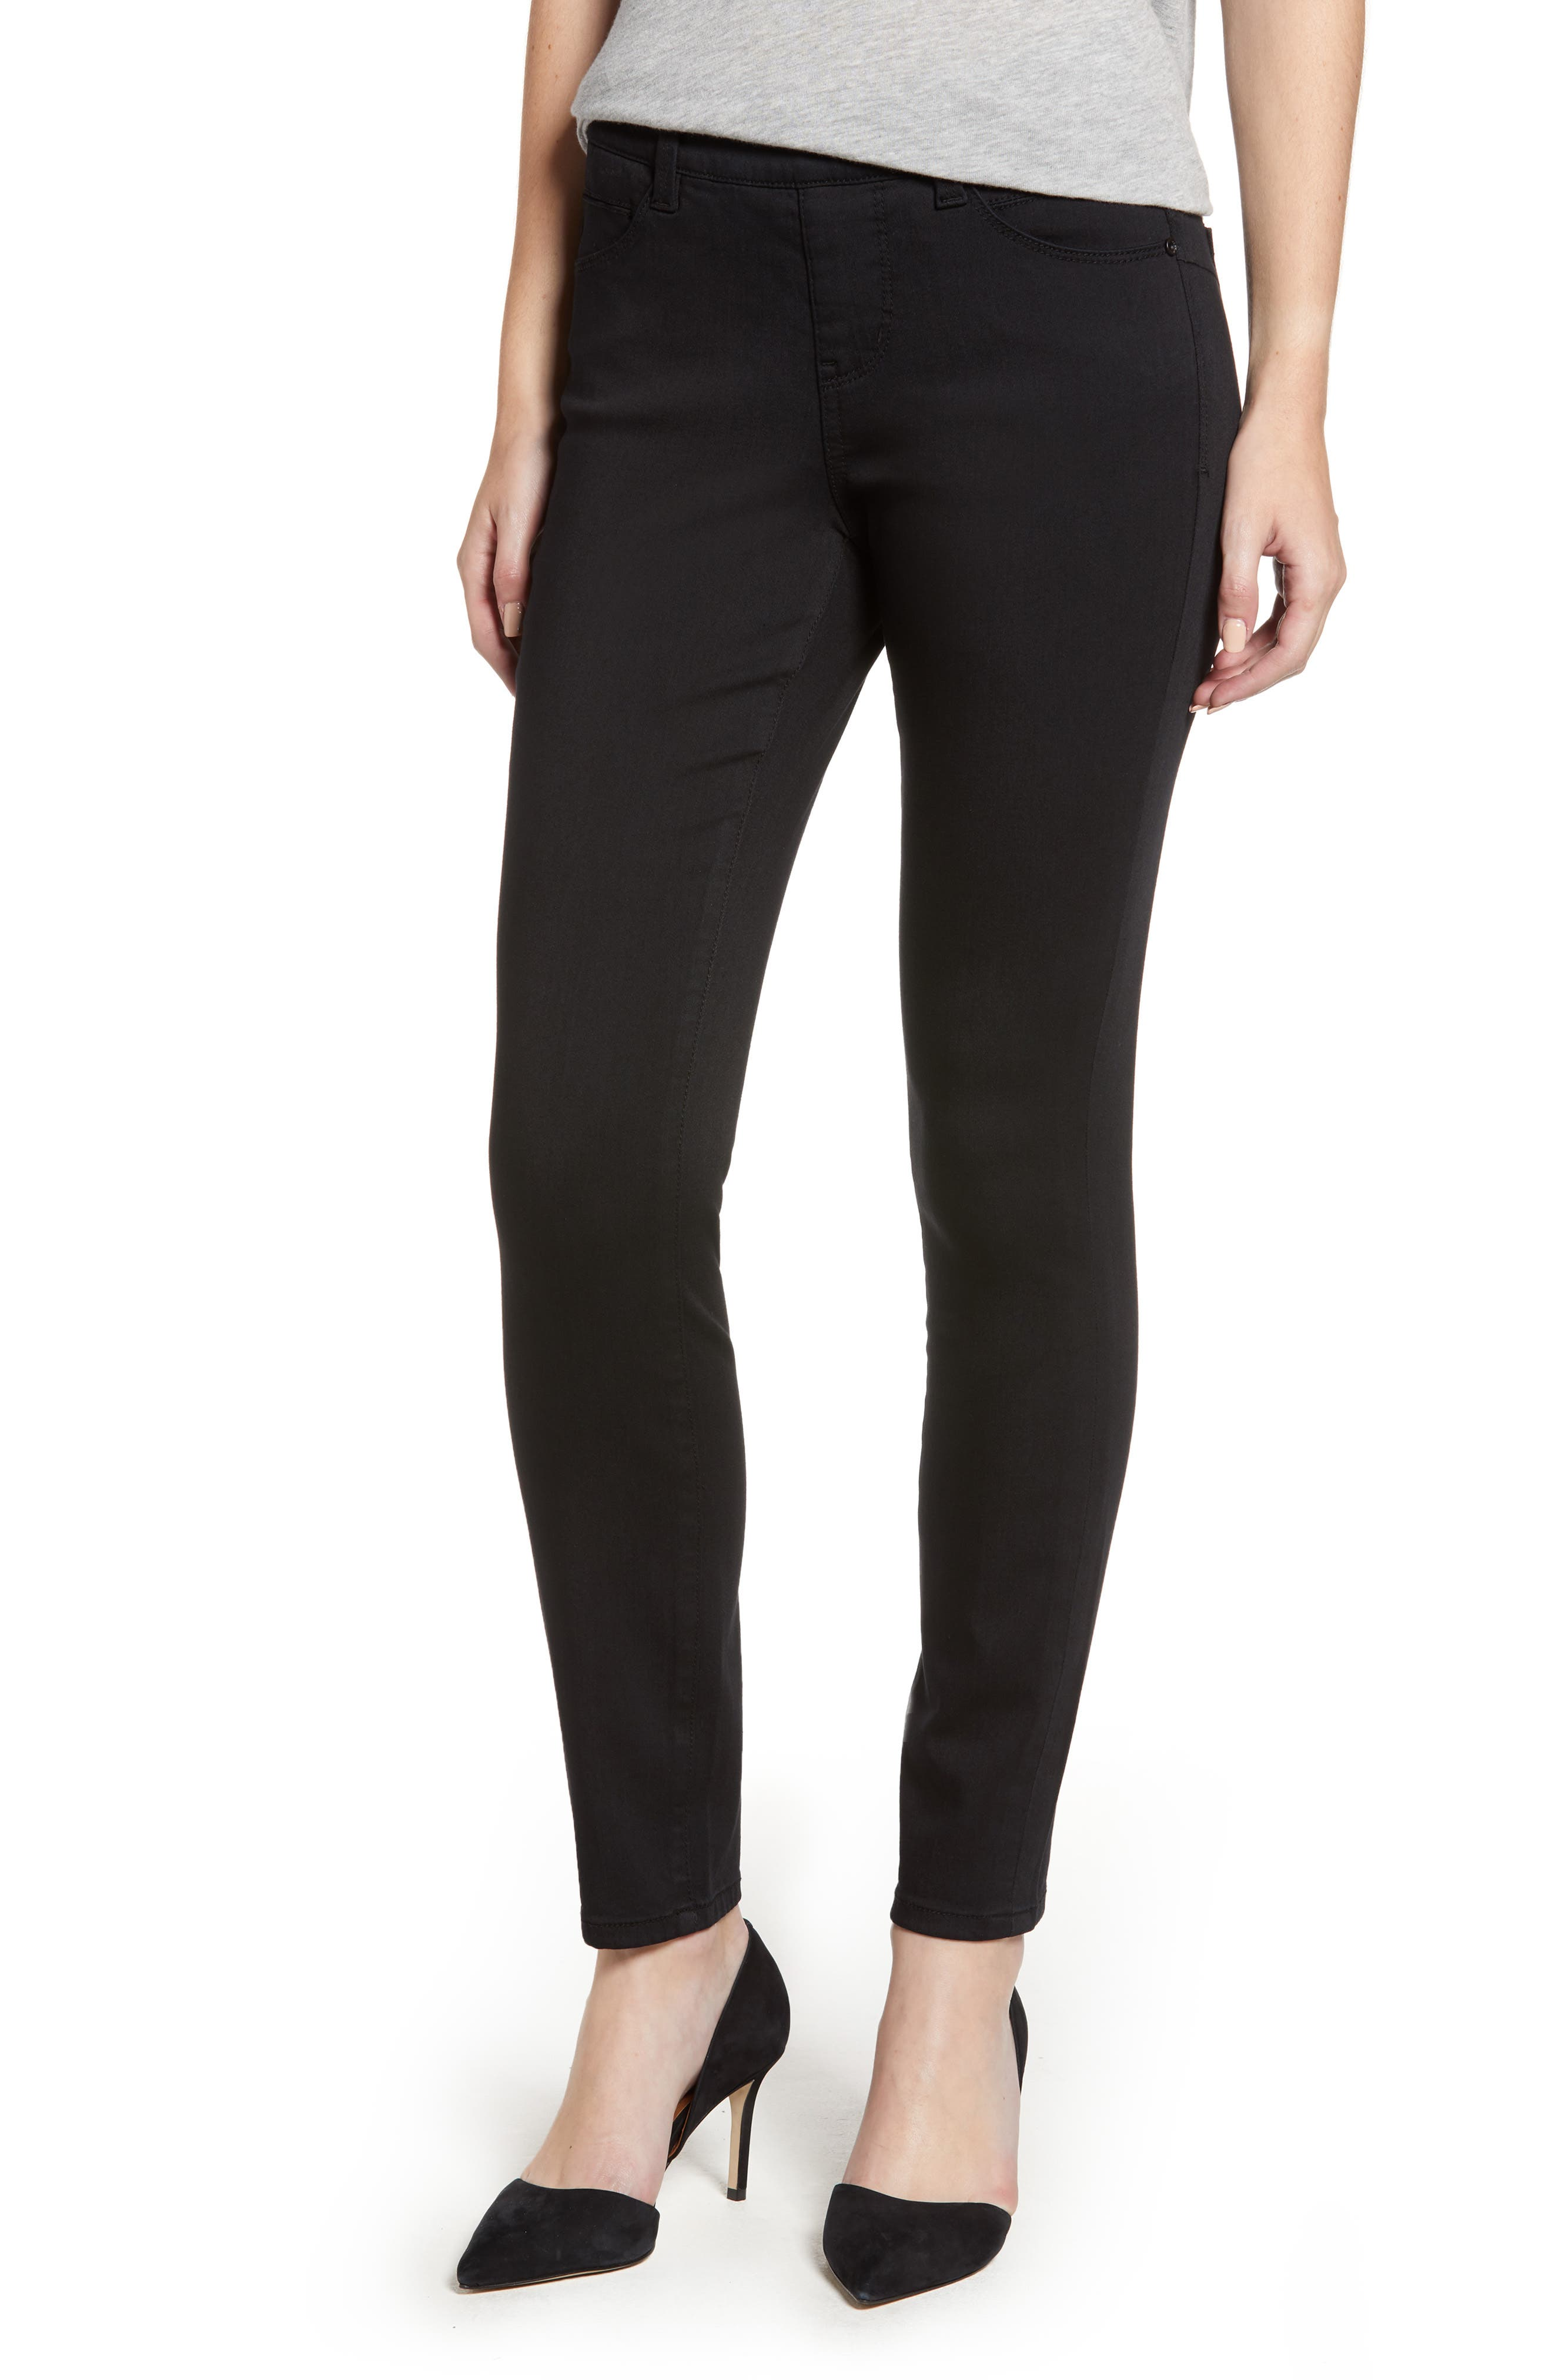 JAG JEANS, Bryn Pull-On Jeans, Main thumbnail 1, color, BLACK